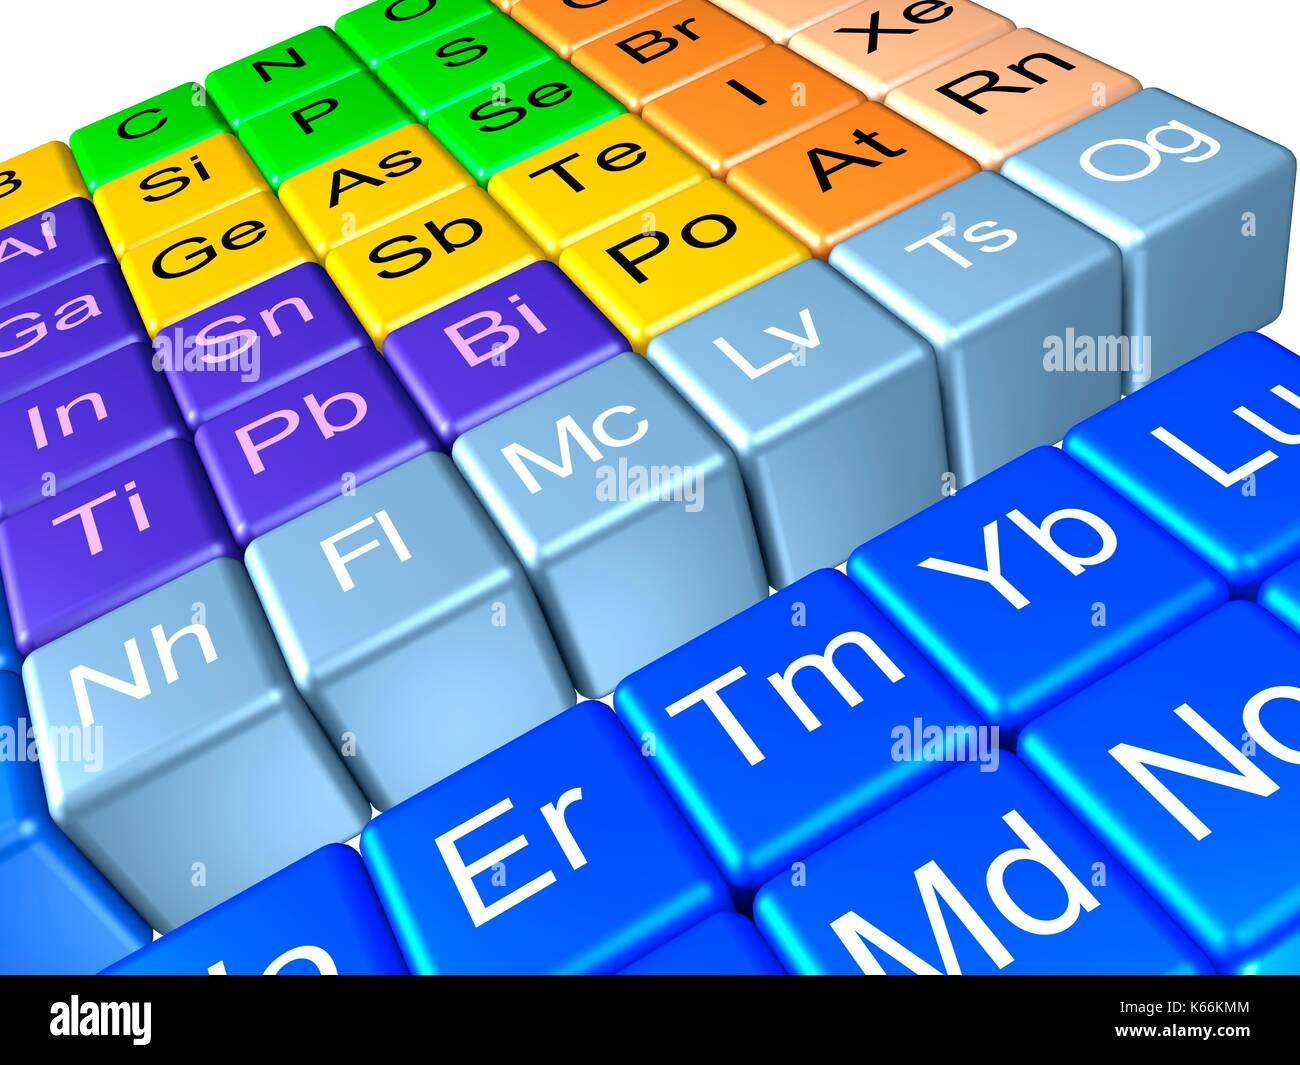 Periodic table chemical element stock photos periodic table computer artwork of a close up of the periodic table focussed on the most recent urtaz Images